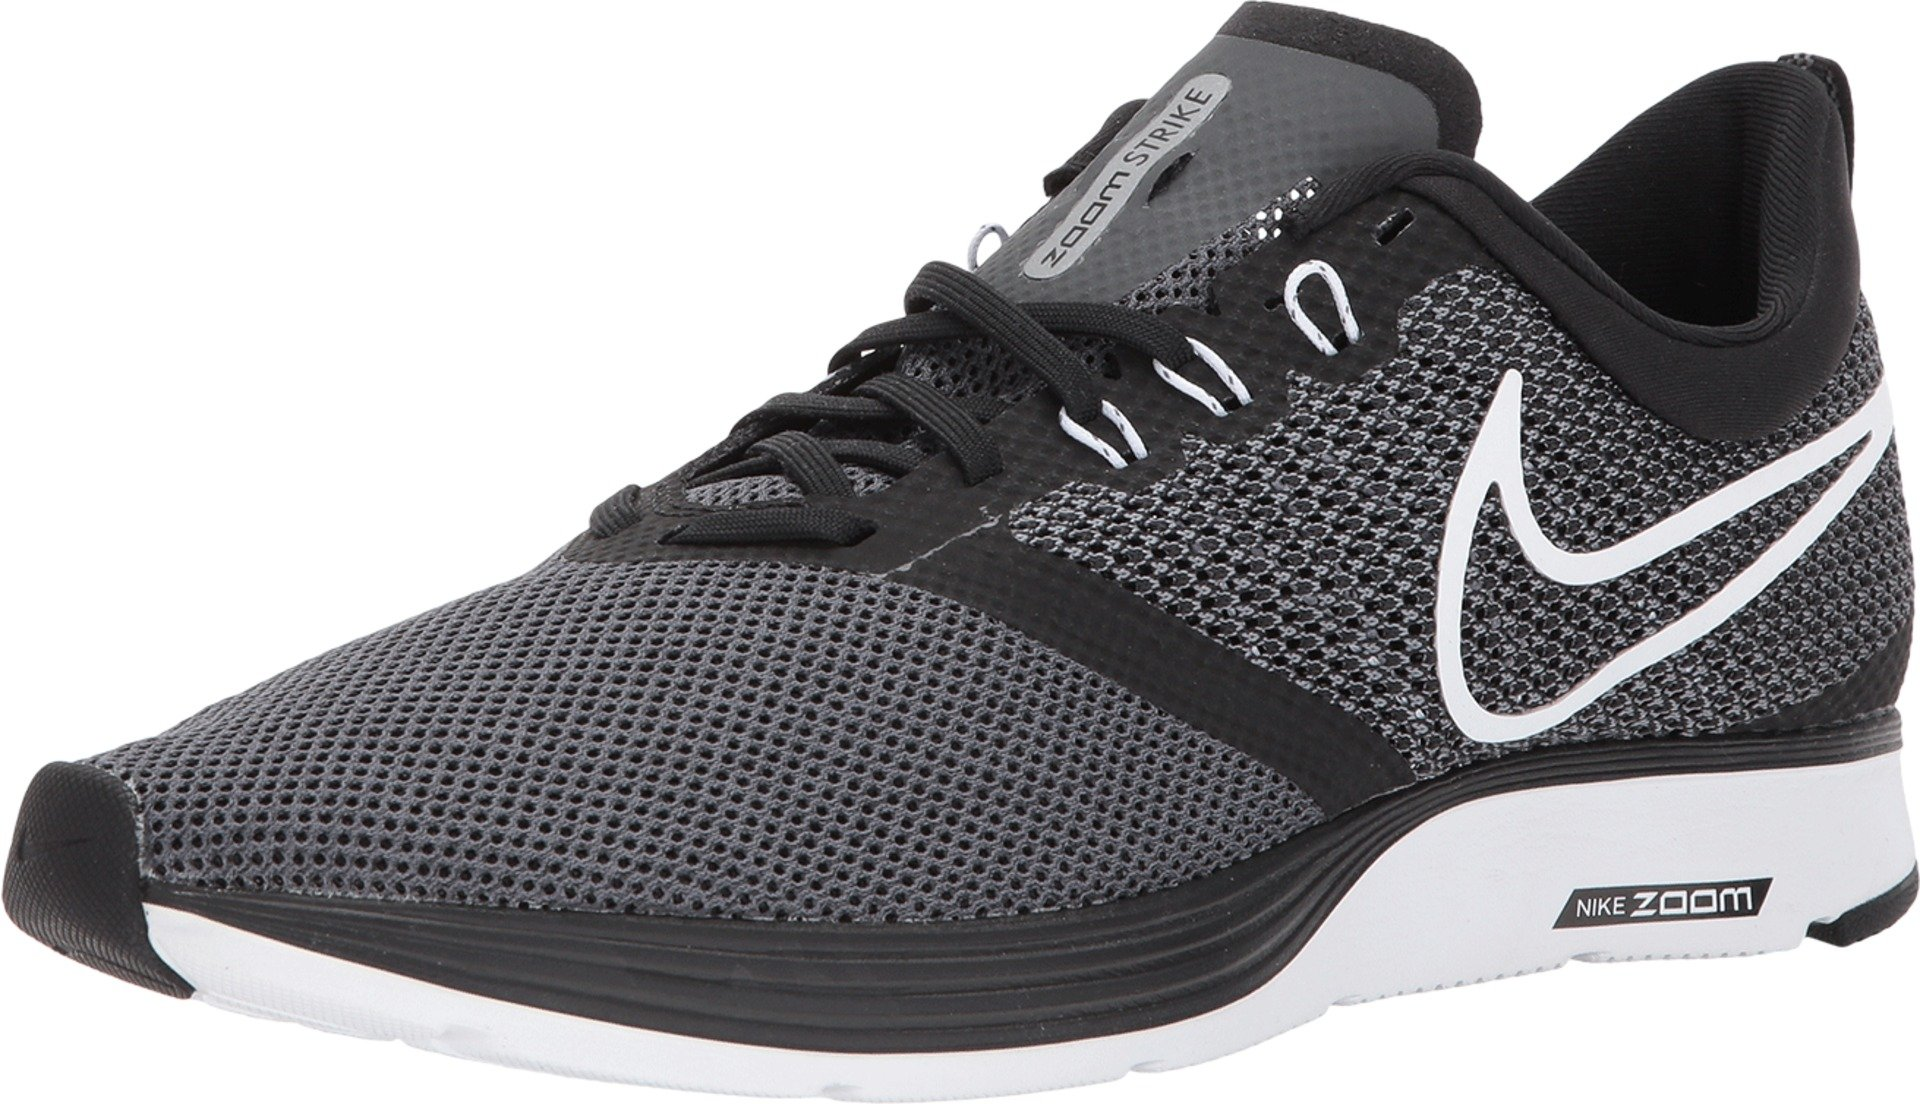 NIKE Men's Zoom Strike Running Shoe Black (9.5)